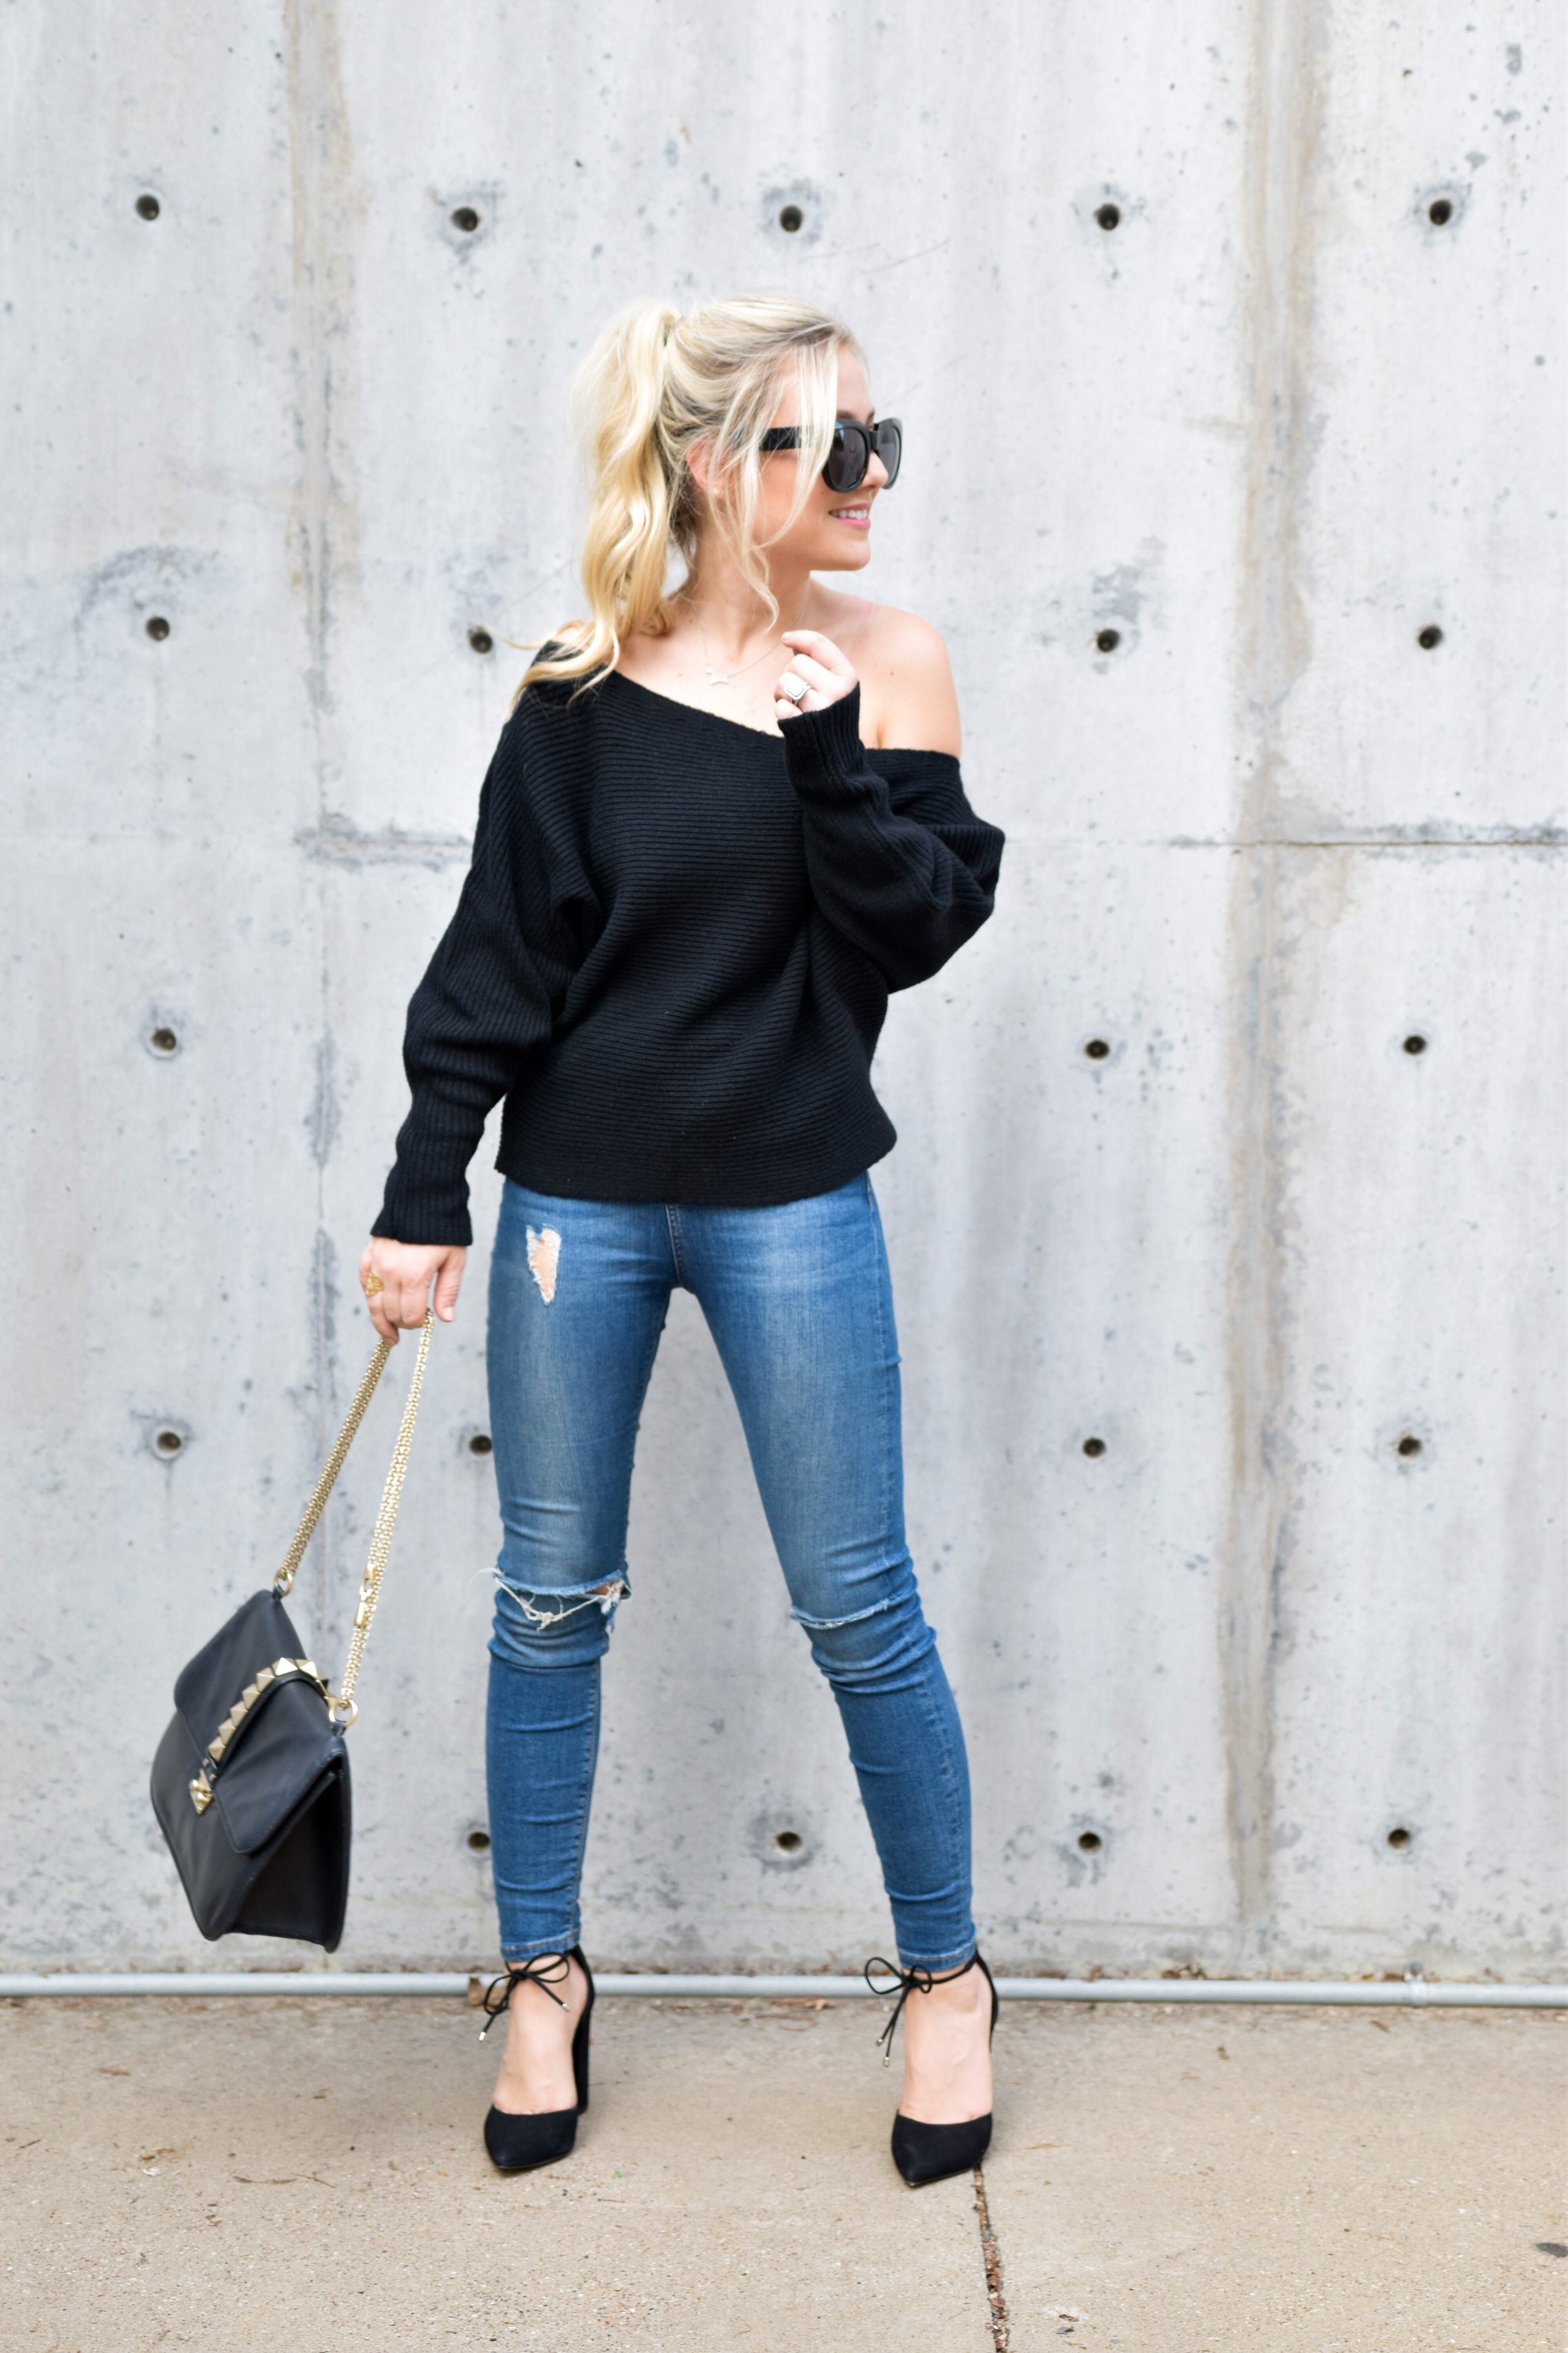 nordstrom, off-the-shoulder-sweater, nordstrom-sweater, nordstrom-topshop, topshop-jeans, jeans-under-$100, valentino-handbag, steve-madden, steve-madden-heels, casual-fall-look, fall-fashion, lo-murphy, fall-style